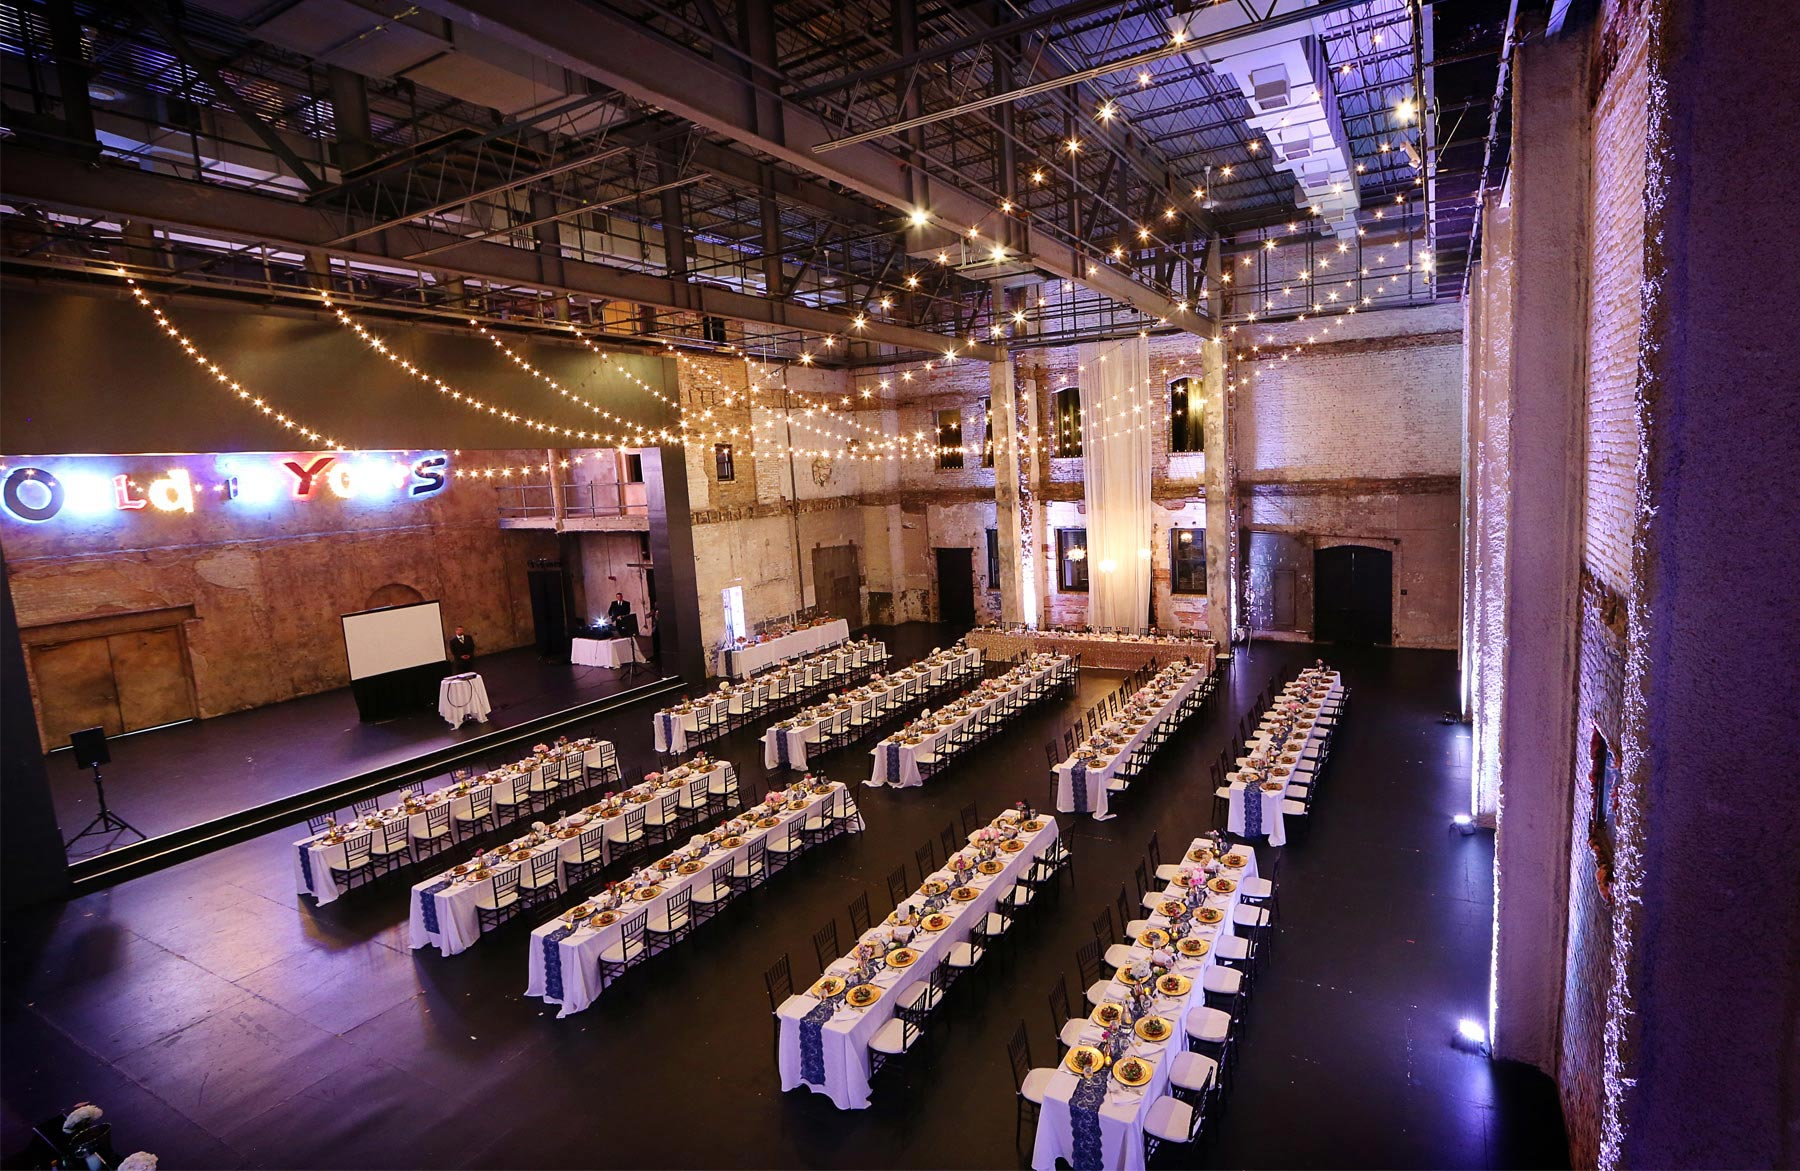 15-Minneapolis-Minnesota-Wedding-Photography-Aria-Reception-Decor-Downtown-Industrial-Heidi-and-Peter.jpg